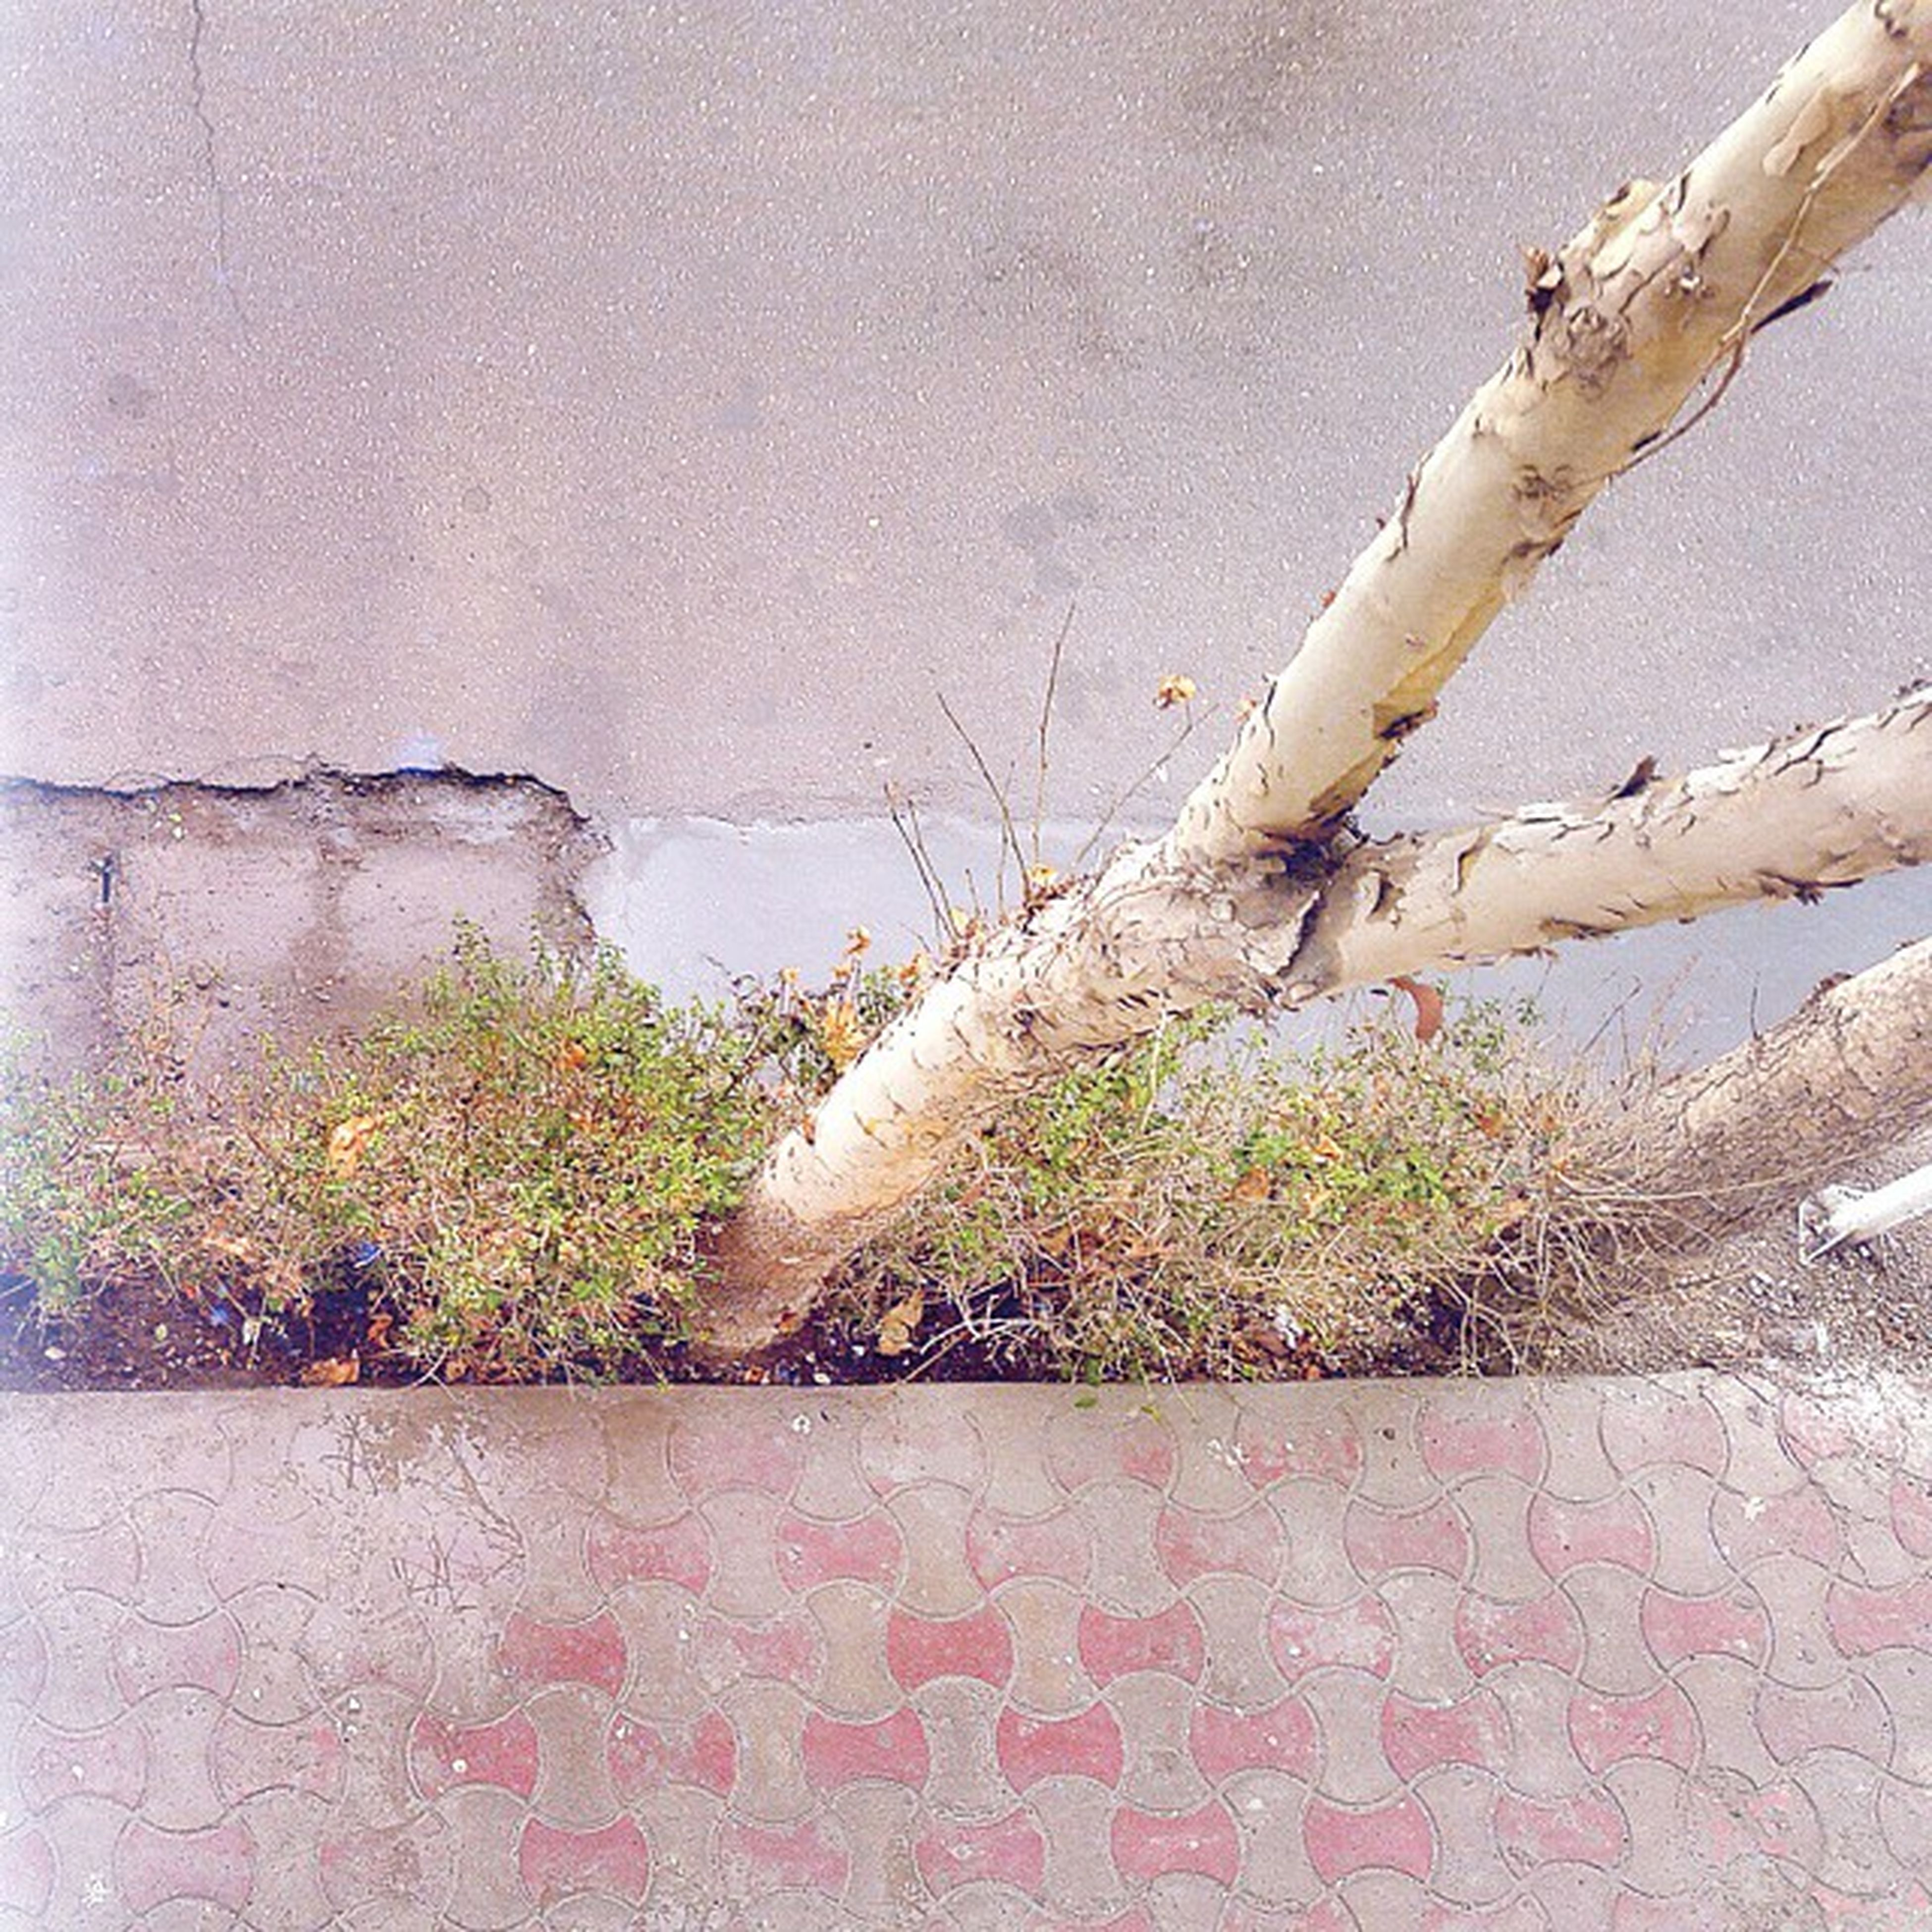 plant, growth, wall - building feature, growing, nature, water, wall, built structure, day, no people, outdoors, architecture, building exterior, branch, green color, tranquility, tree, beauty in nature, close-up, leaf